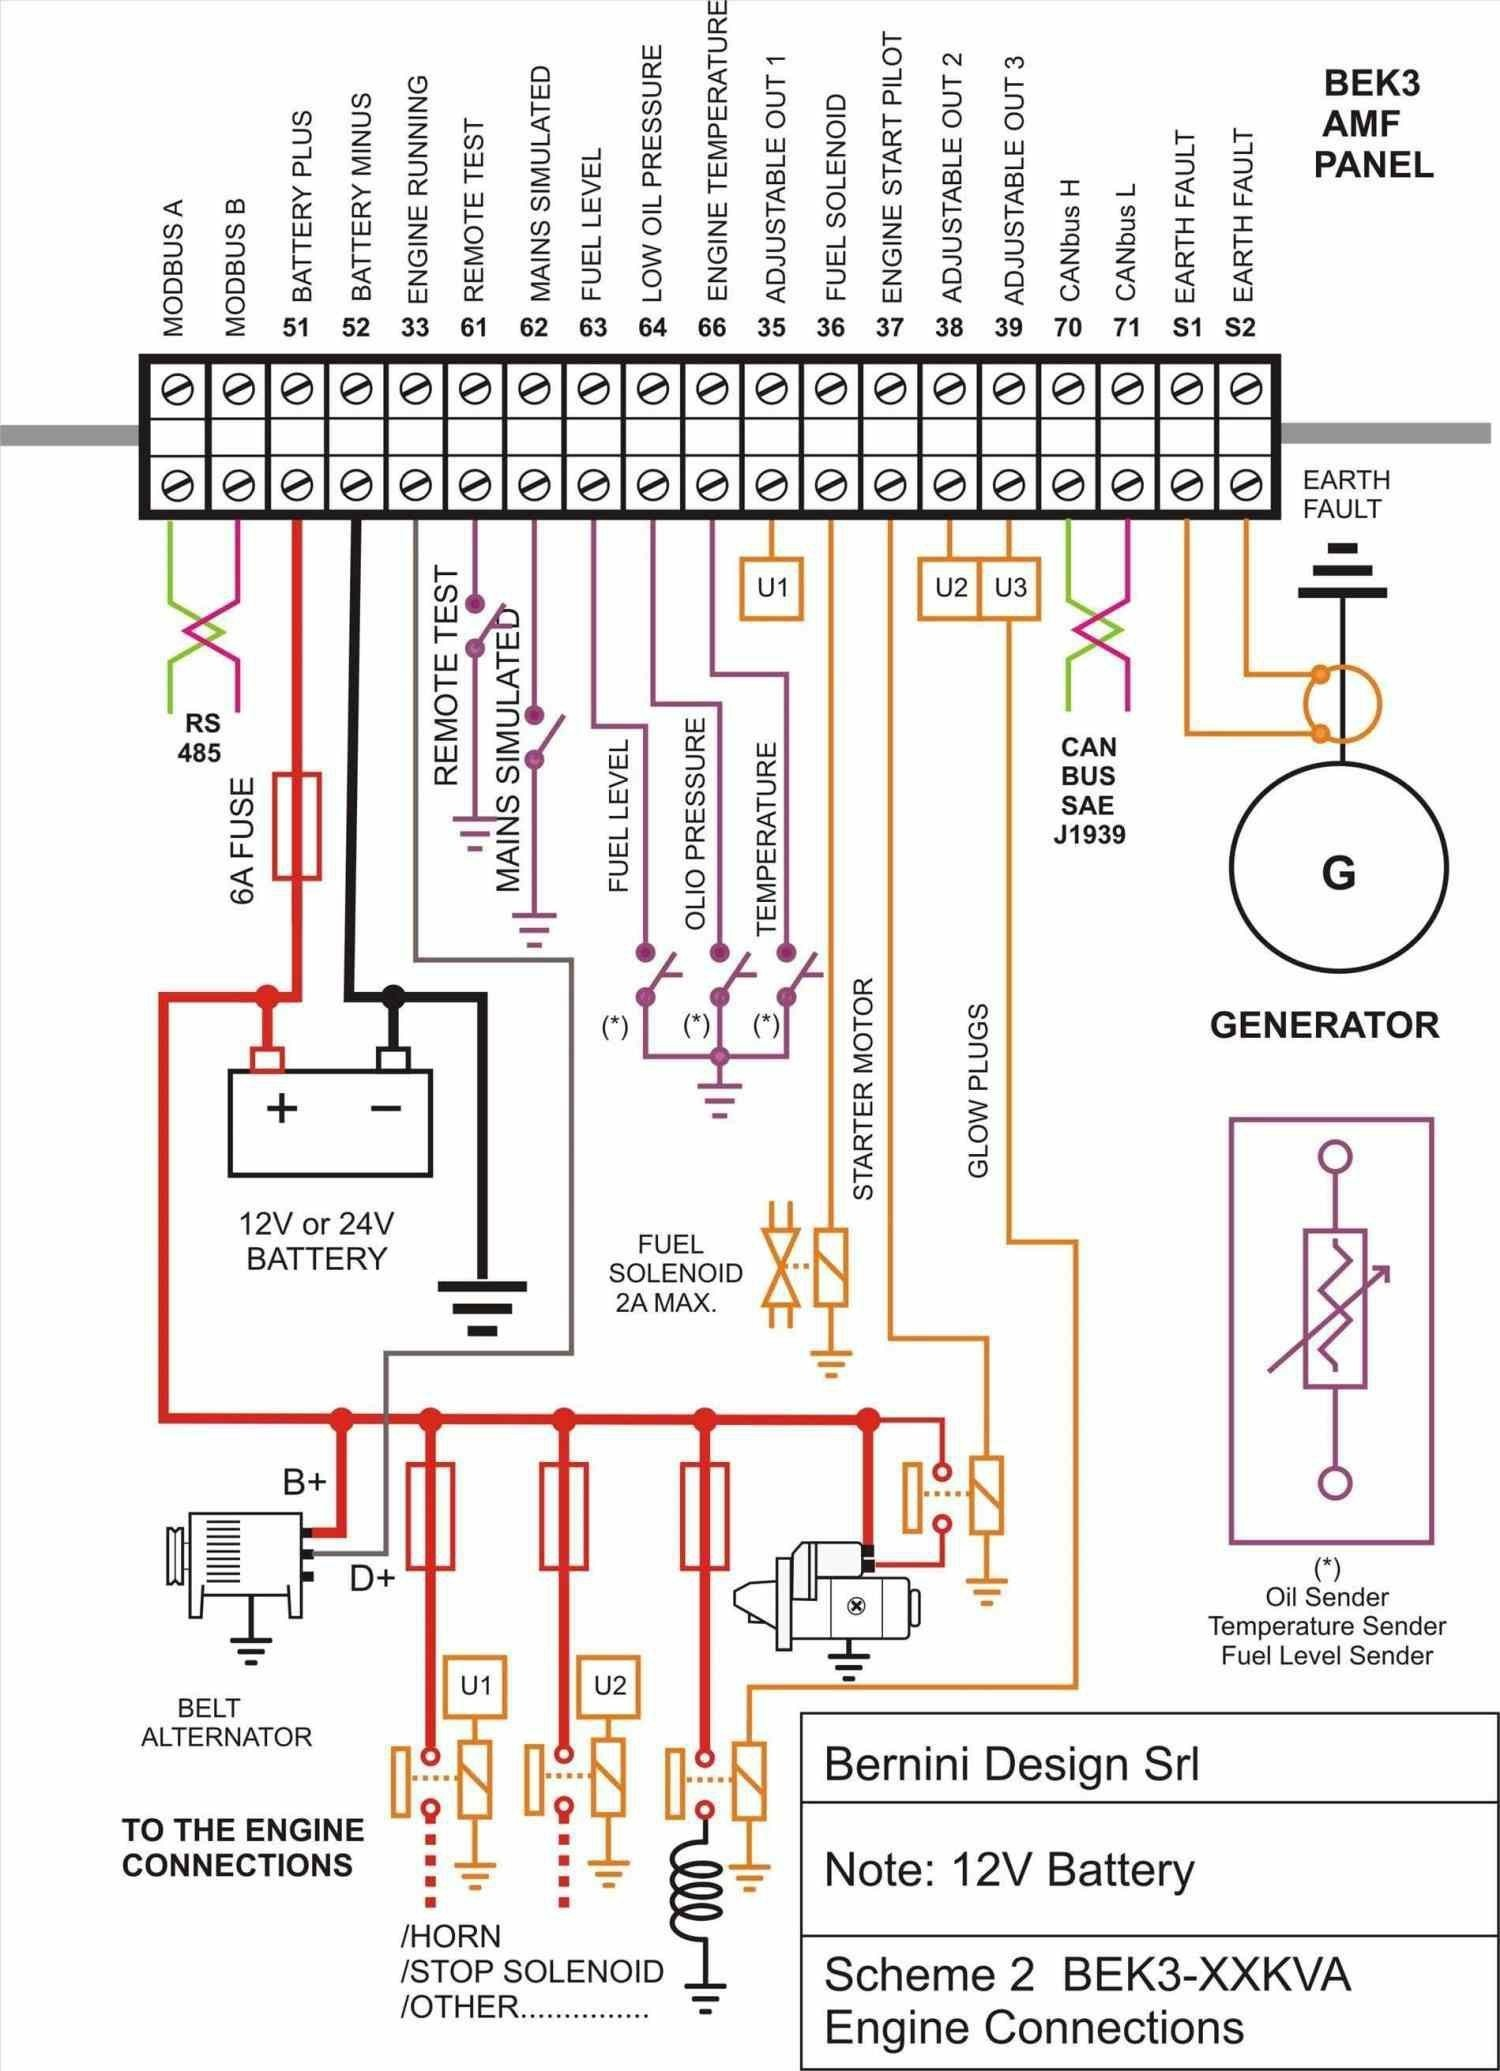 lennox furnace wiring diagram hecho box wiring diagramold lennox gas furnace wiring diagram wiring diagrams lennox electric furnace wiring diagram lennox furnace wiring diagram hecho